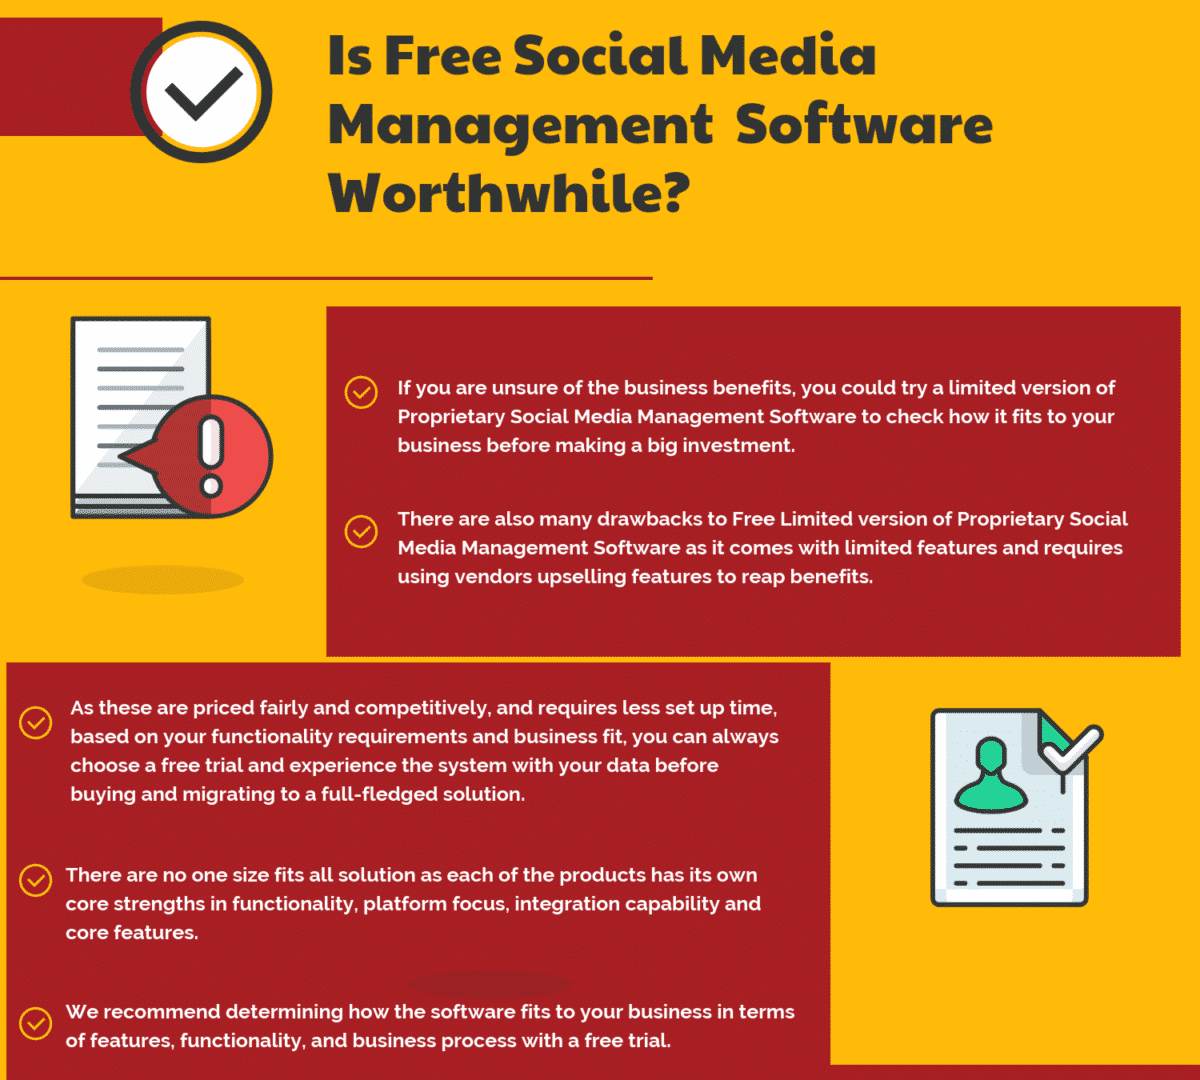 Is Free Social Media Management Software Worthwhile